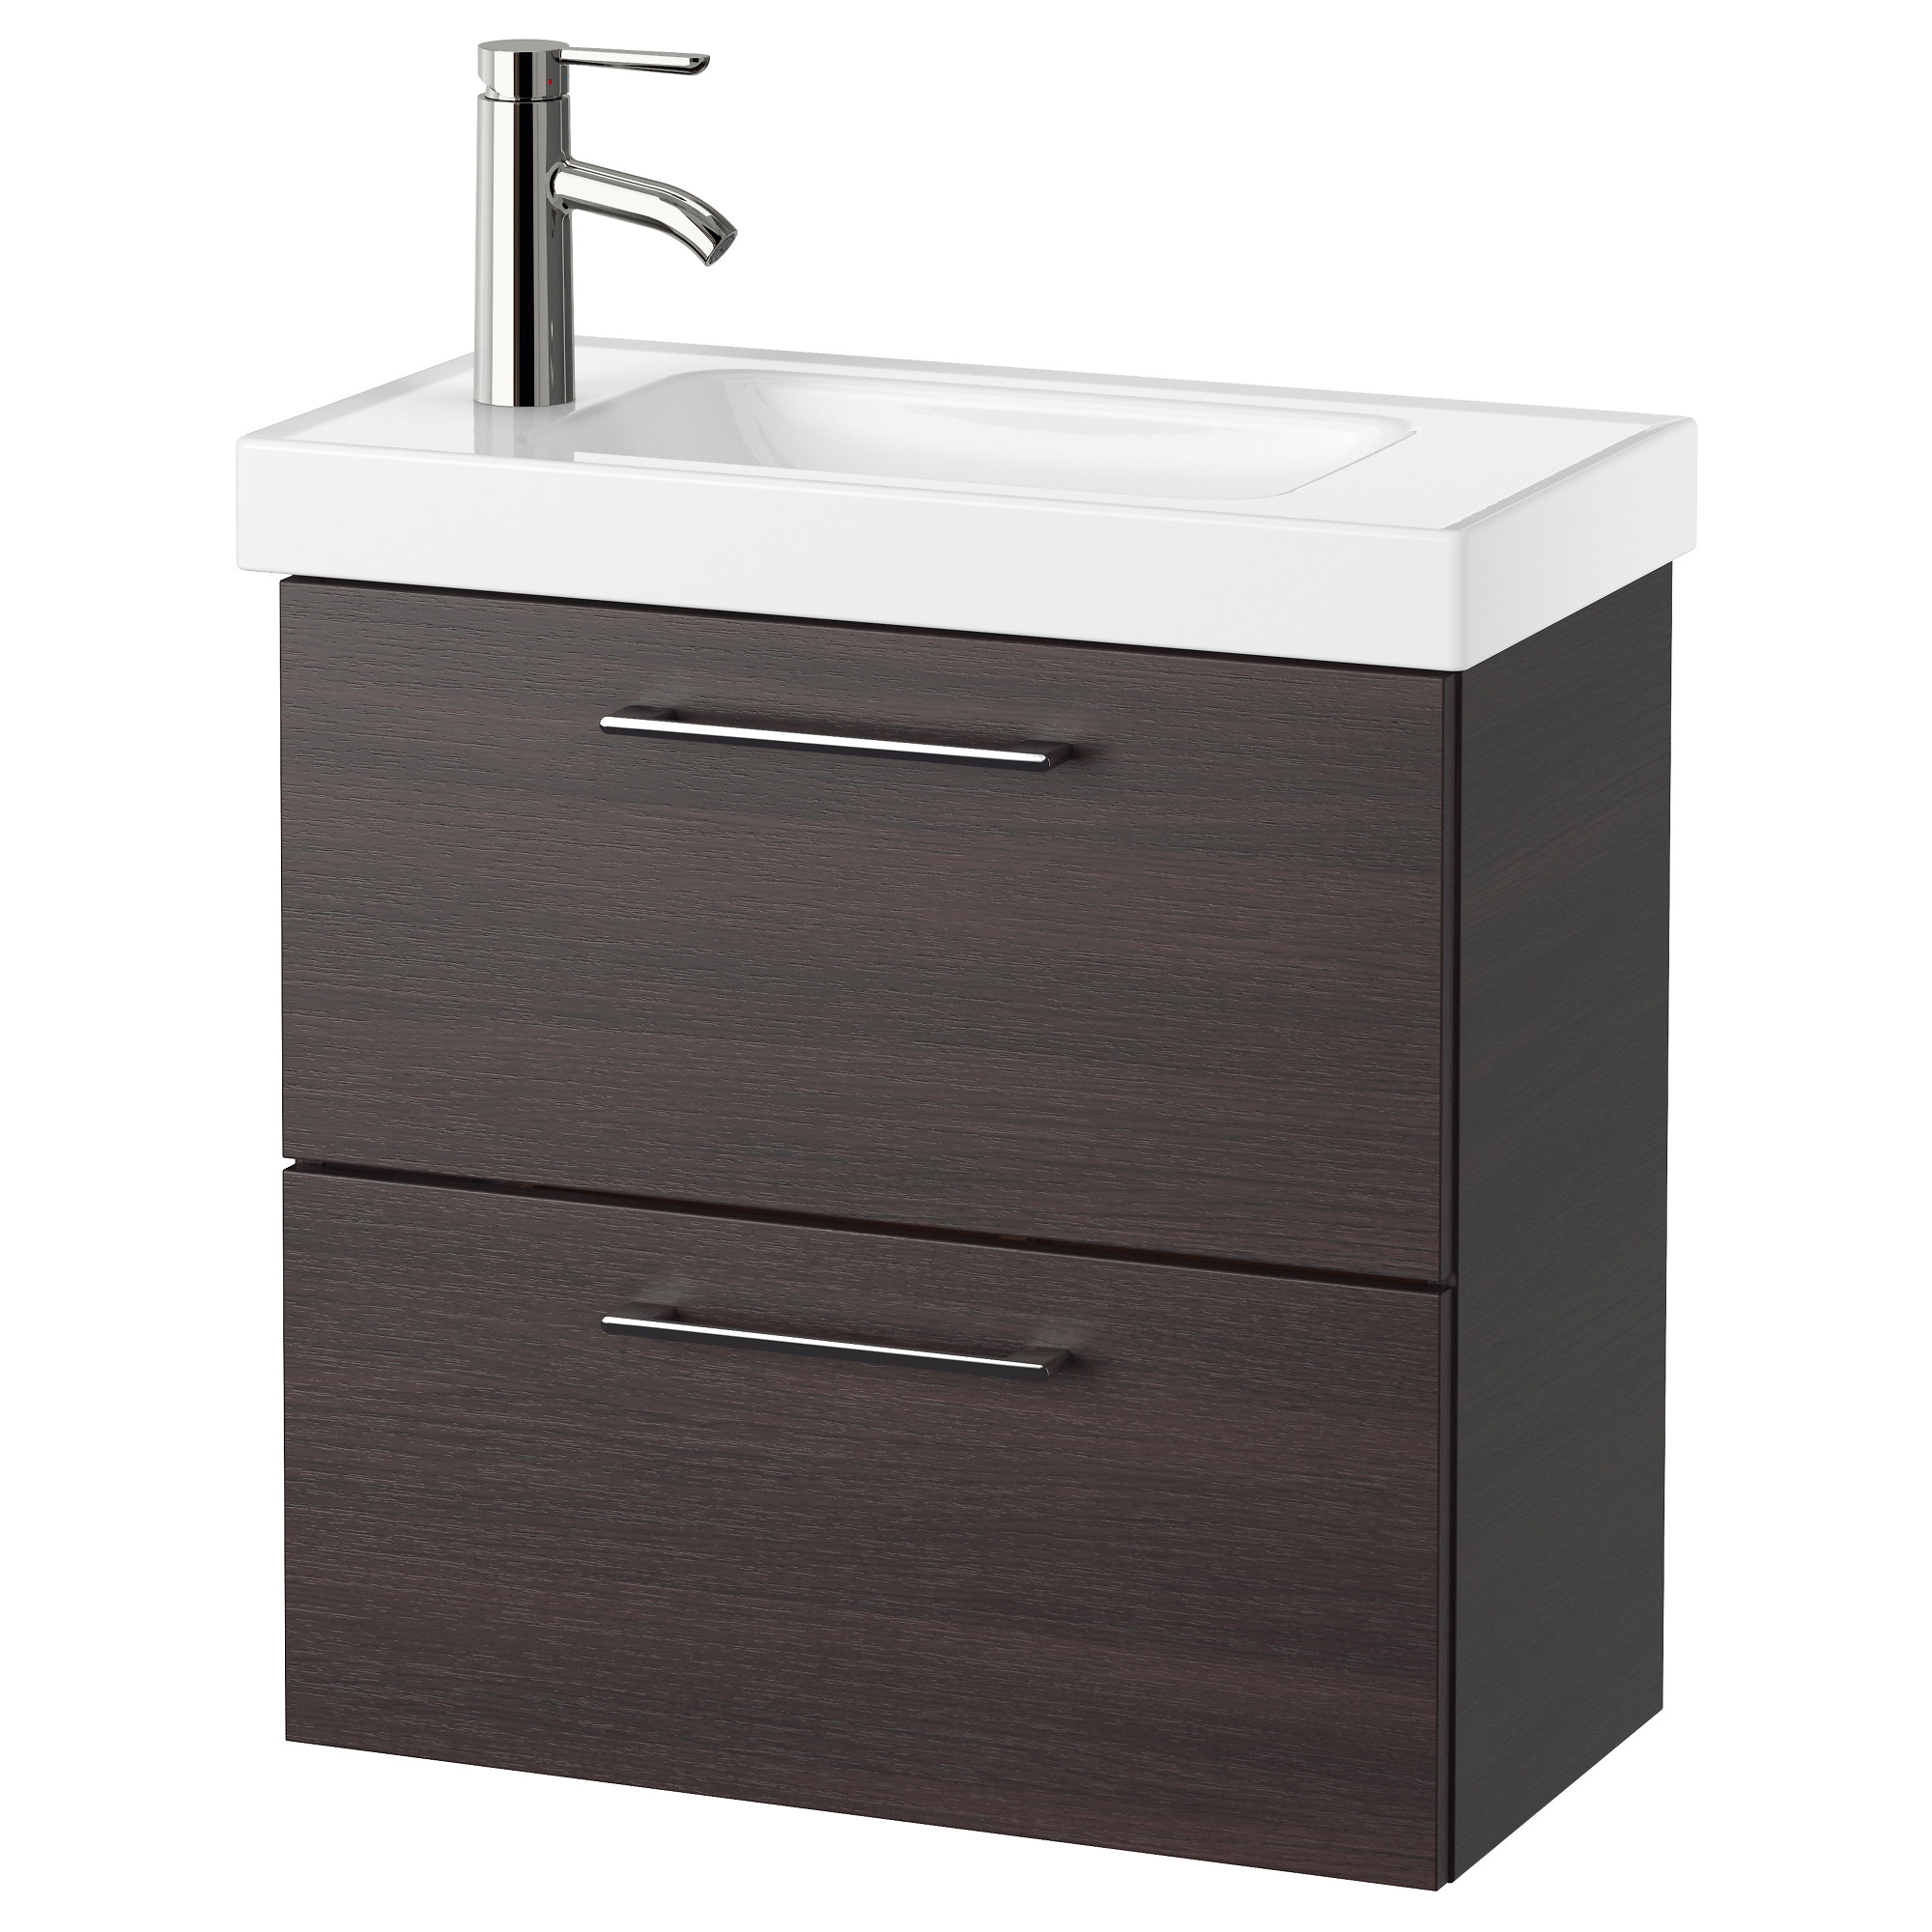 godmorgon hagaviken sink cabinet with 2 drawers black brown width 24 3 - Bathroom Cabinets Sink